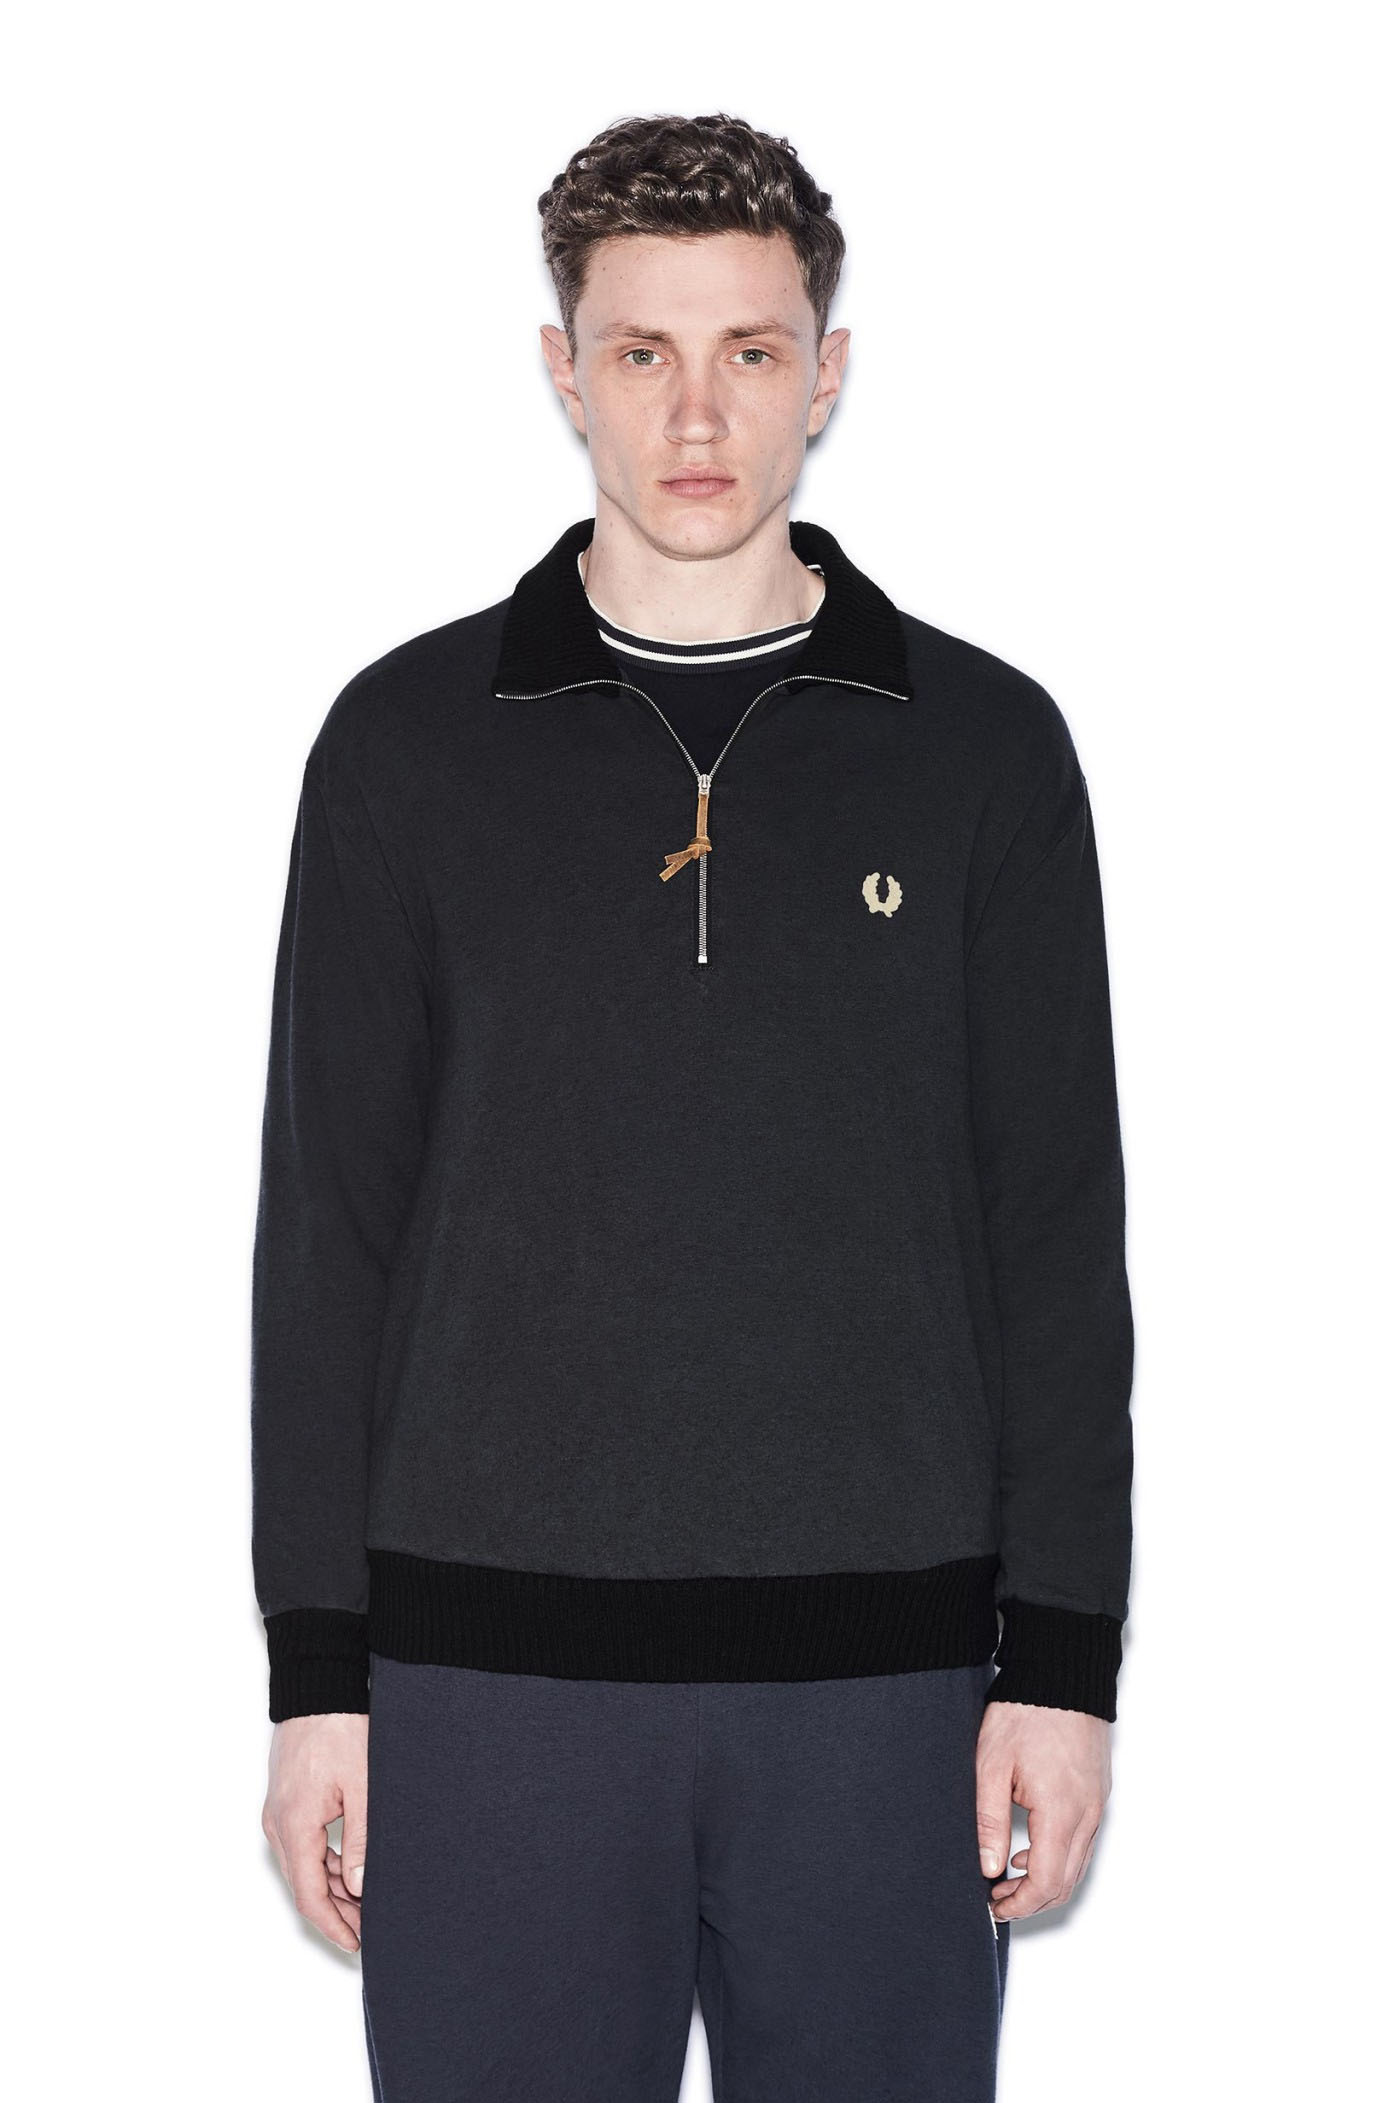 d7150b003649 Nigel Cabourn x Fred Perry - Inspired by Football - SoccerBible.